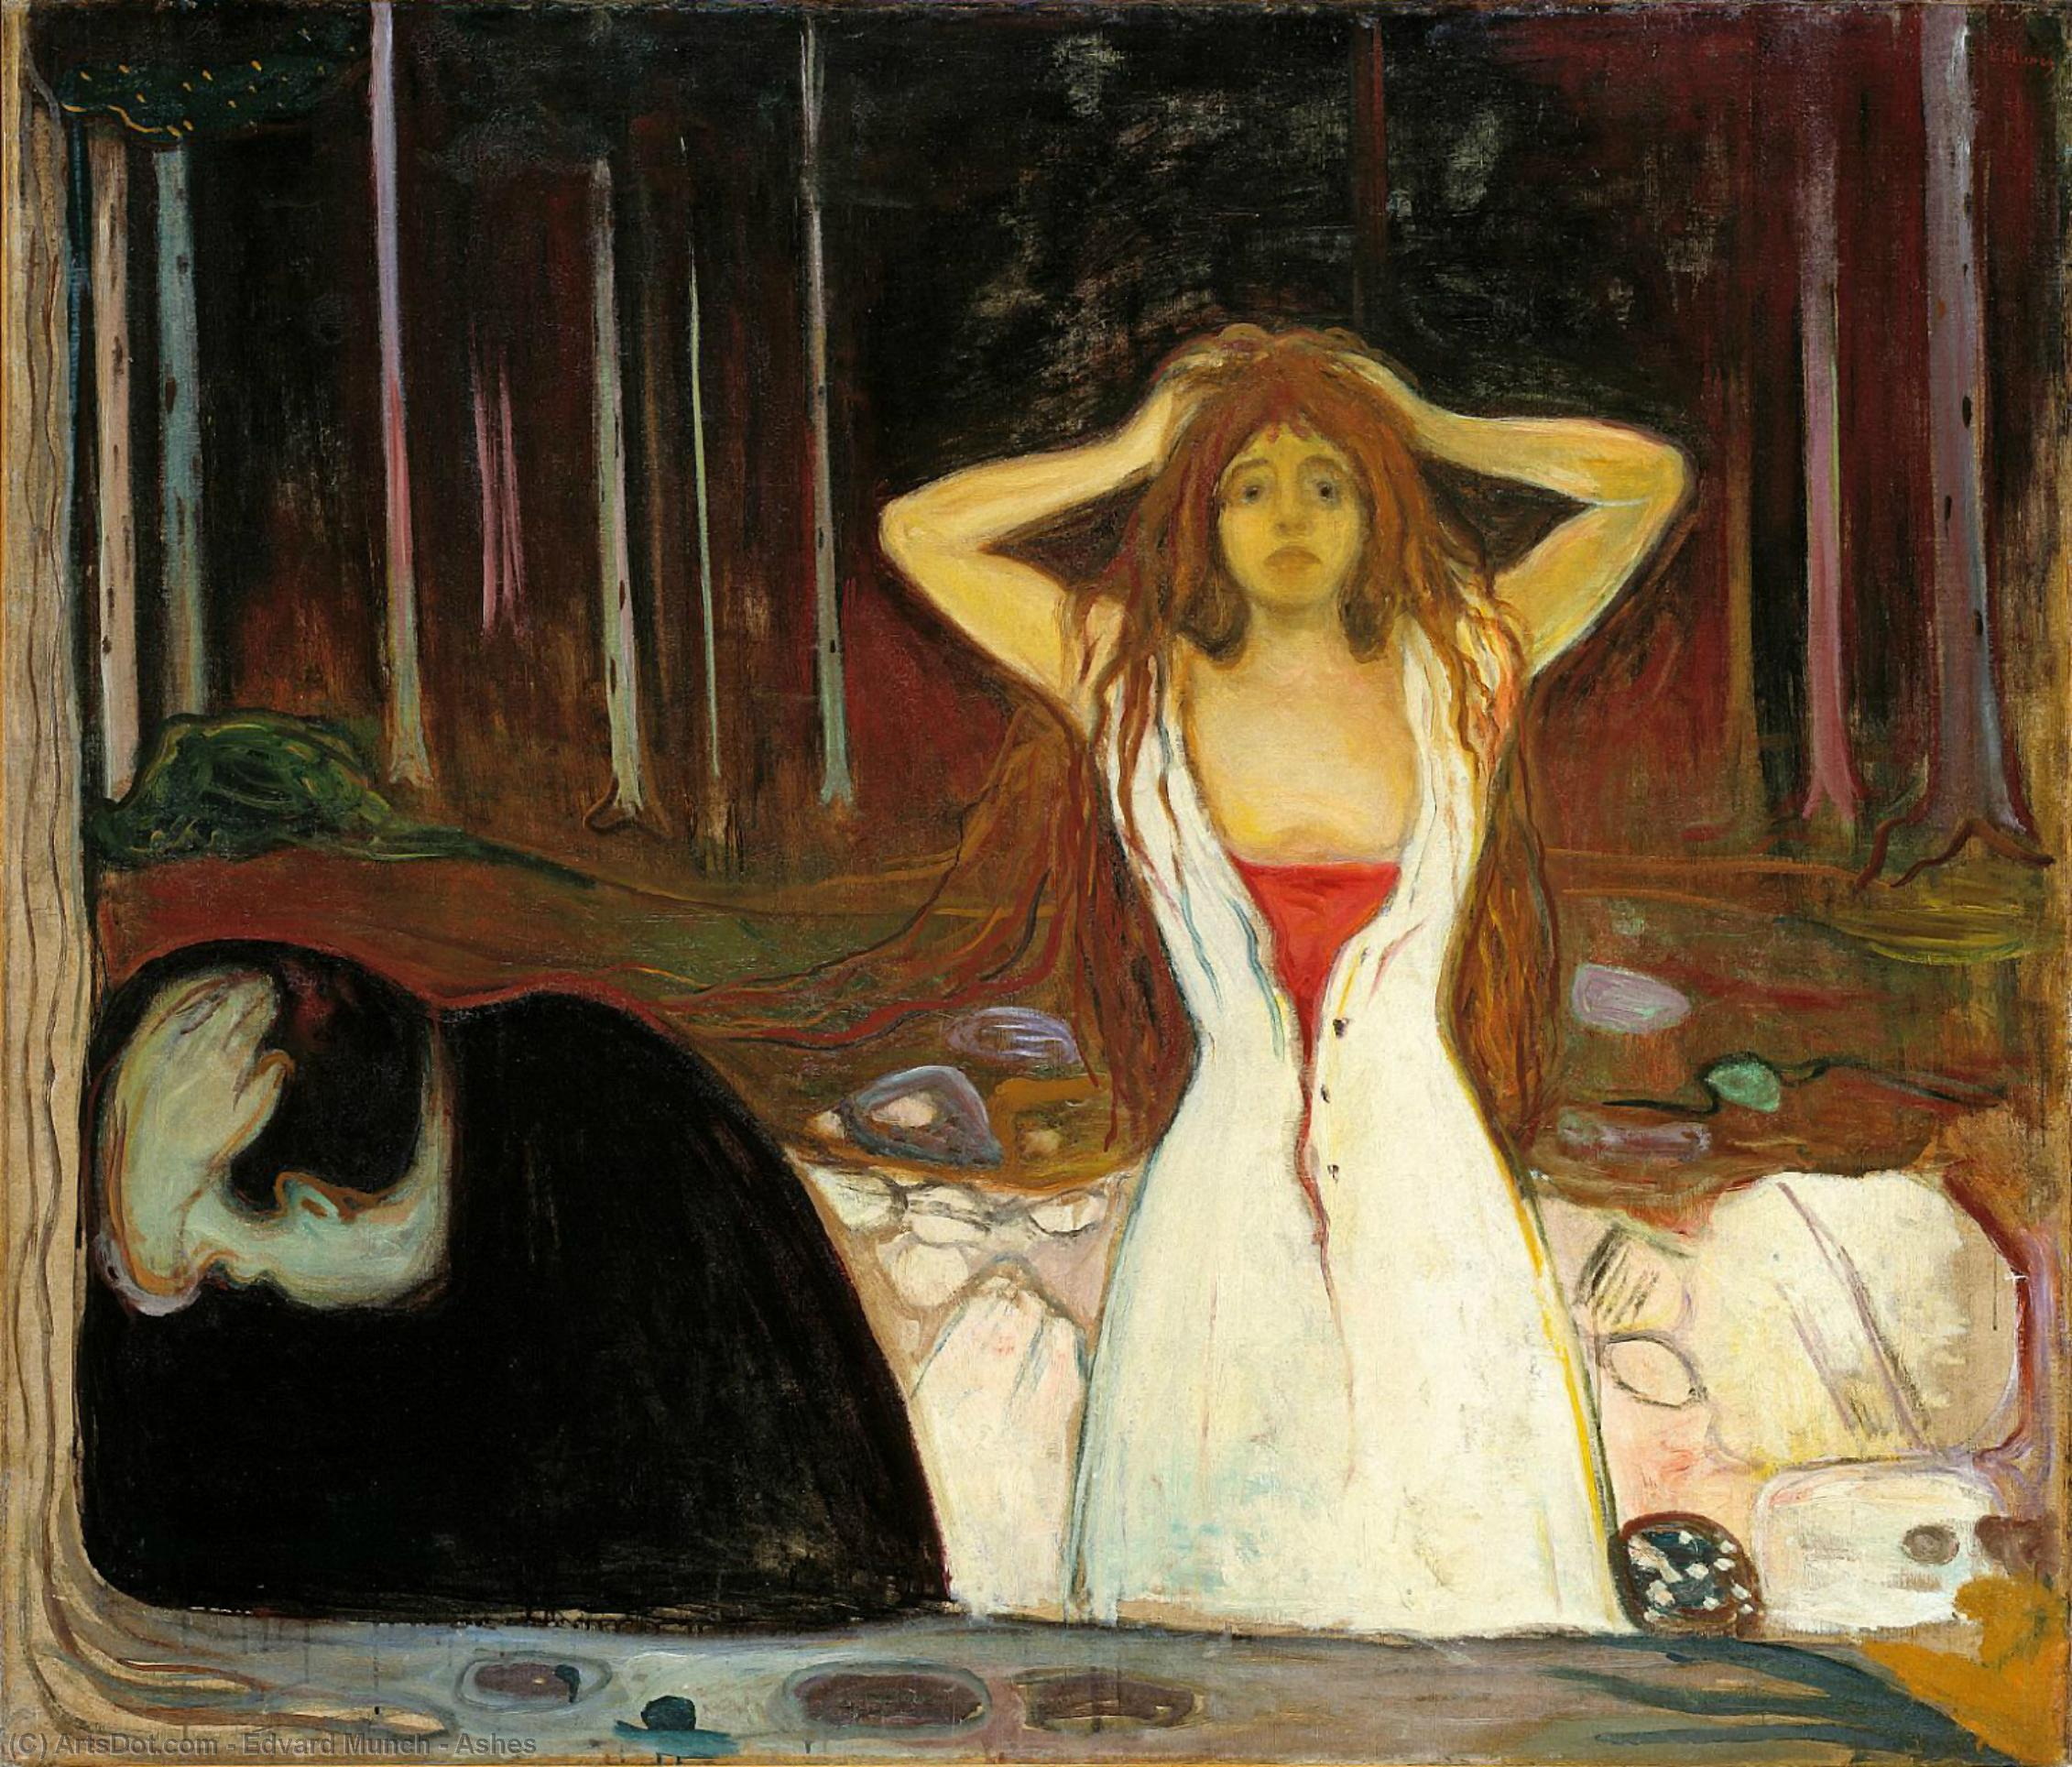 Wikioo.org - The Encyclopedia of Fine Arts - Painting, Artwork by Edvard Munch - Ashes